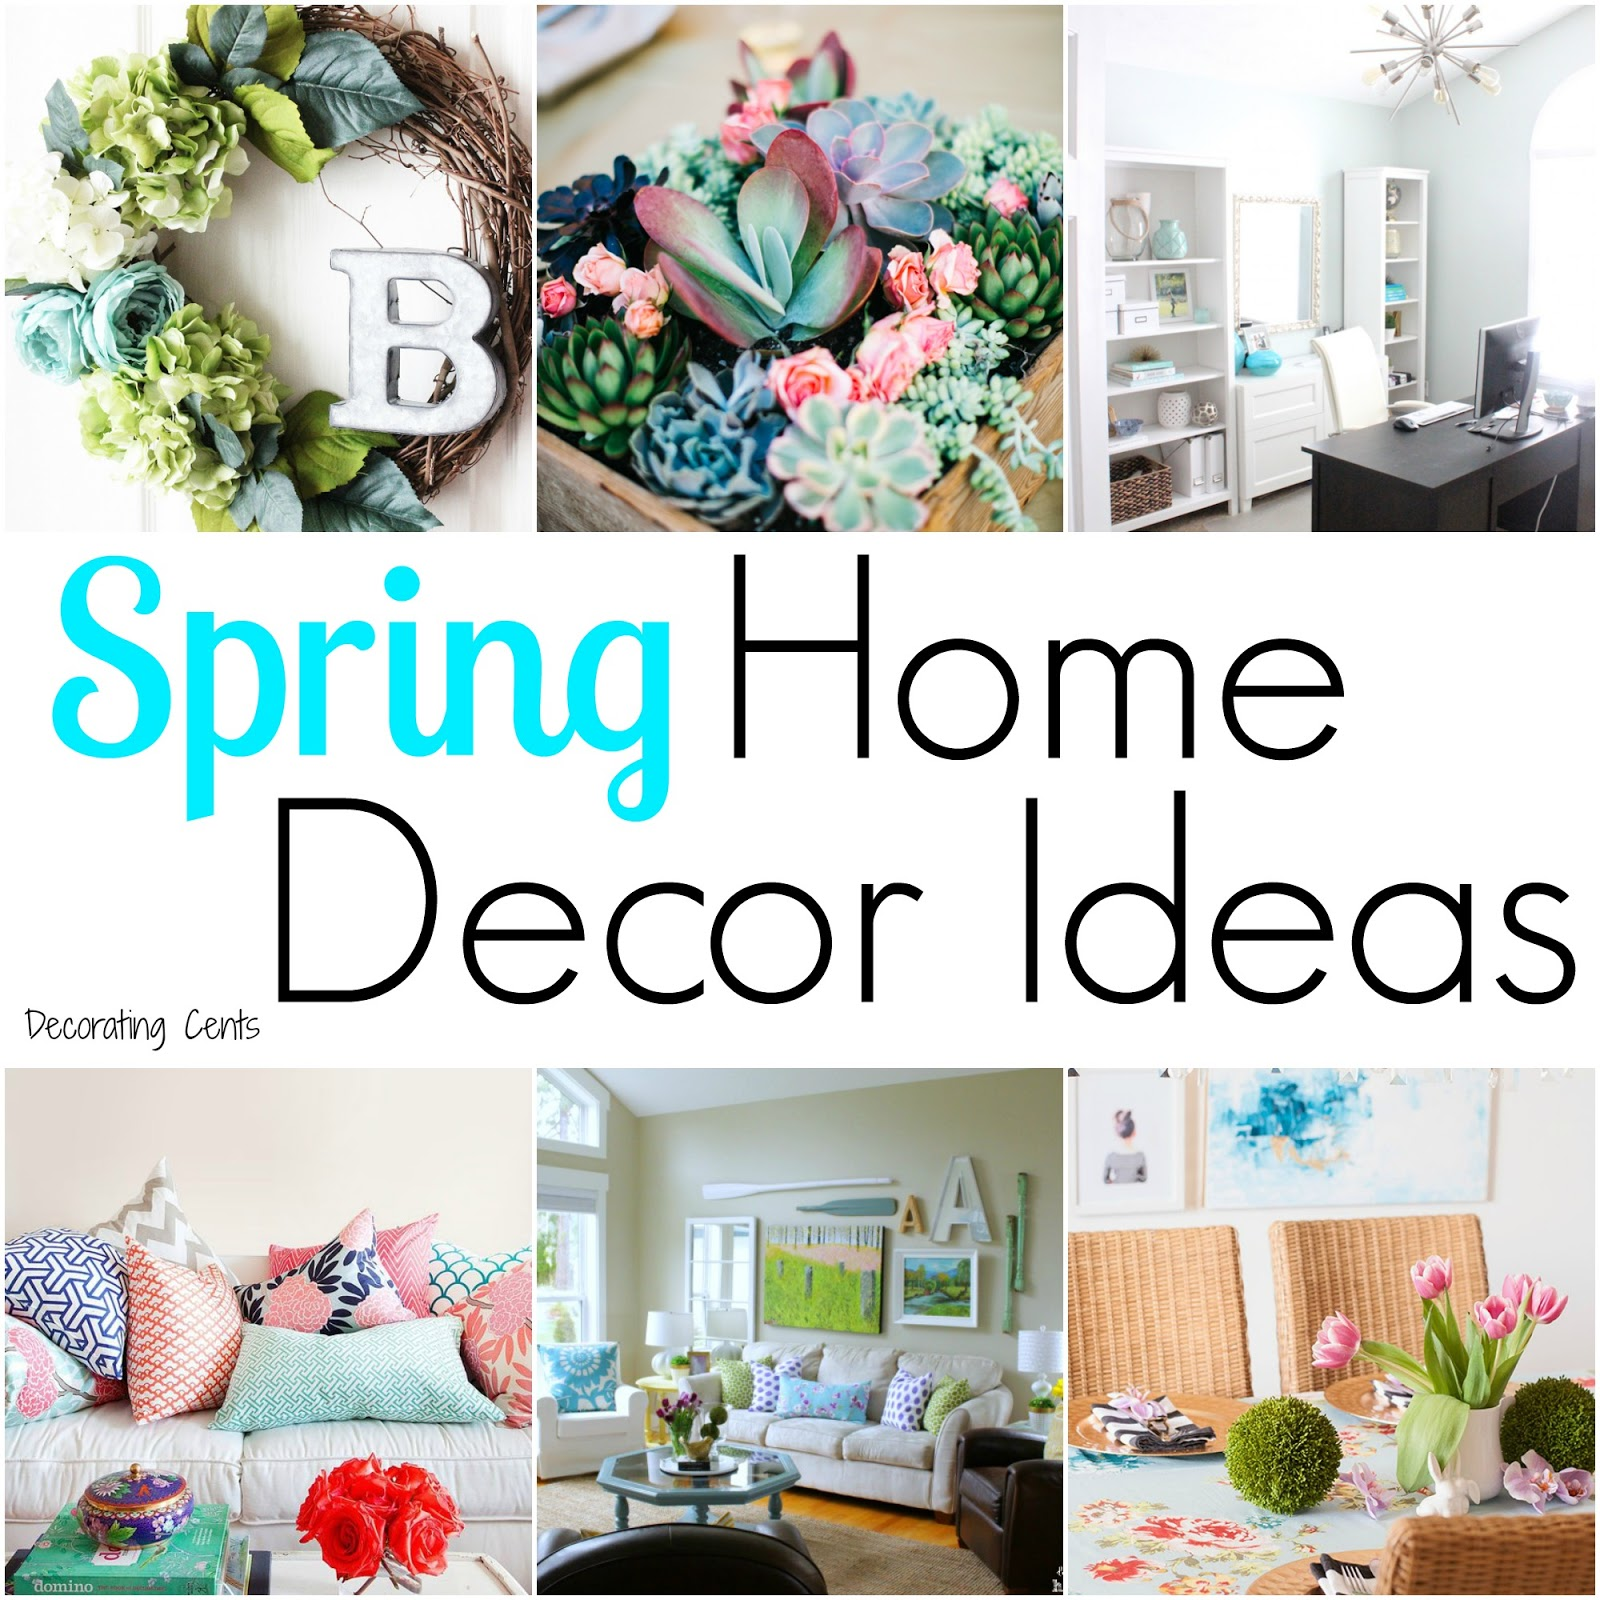 Decorating cents spring home decor ideas for Home decoration design